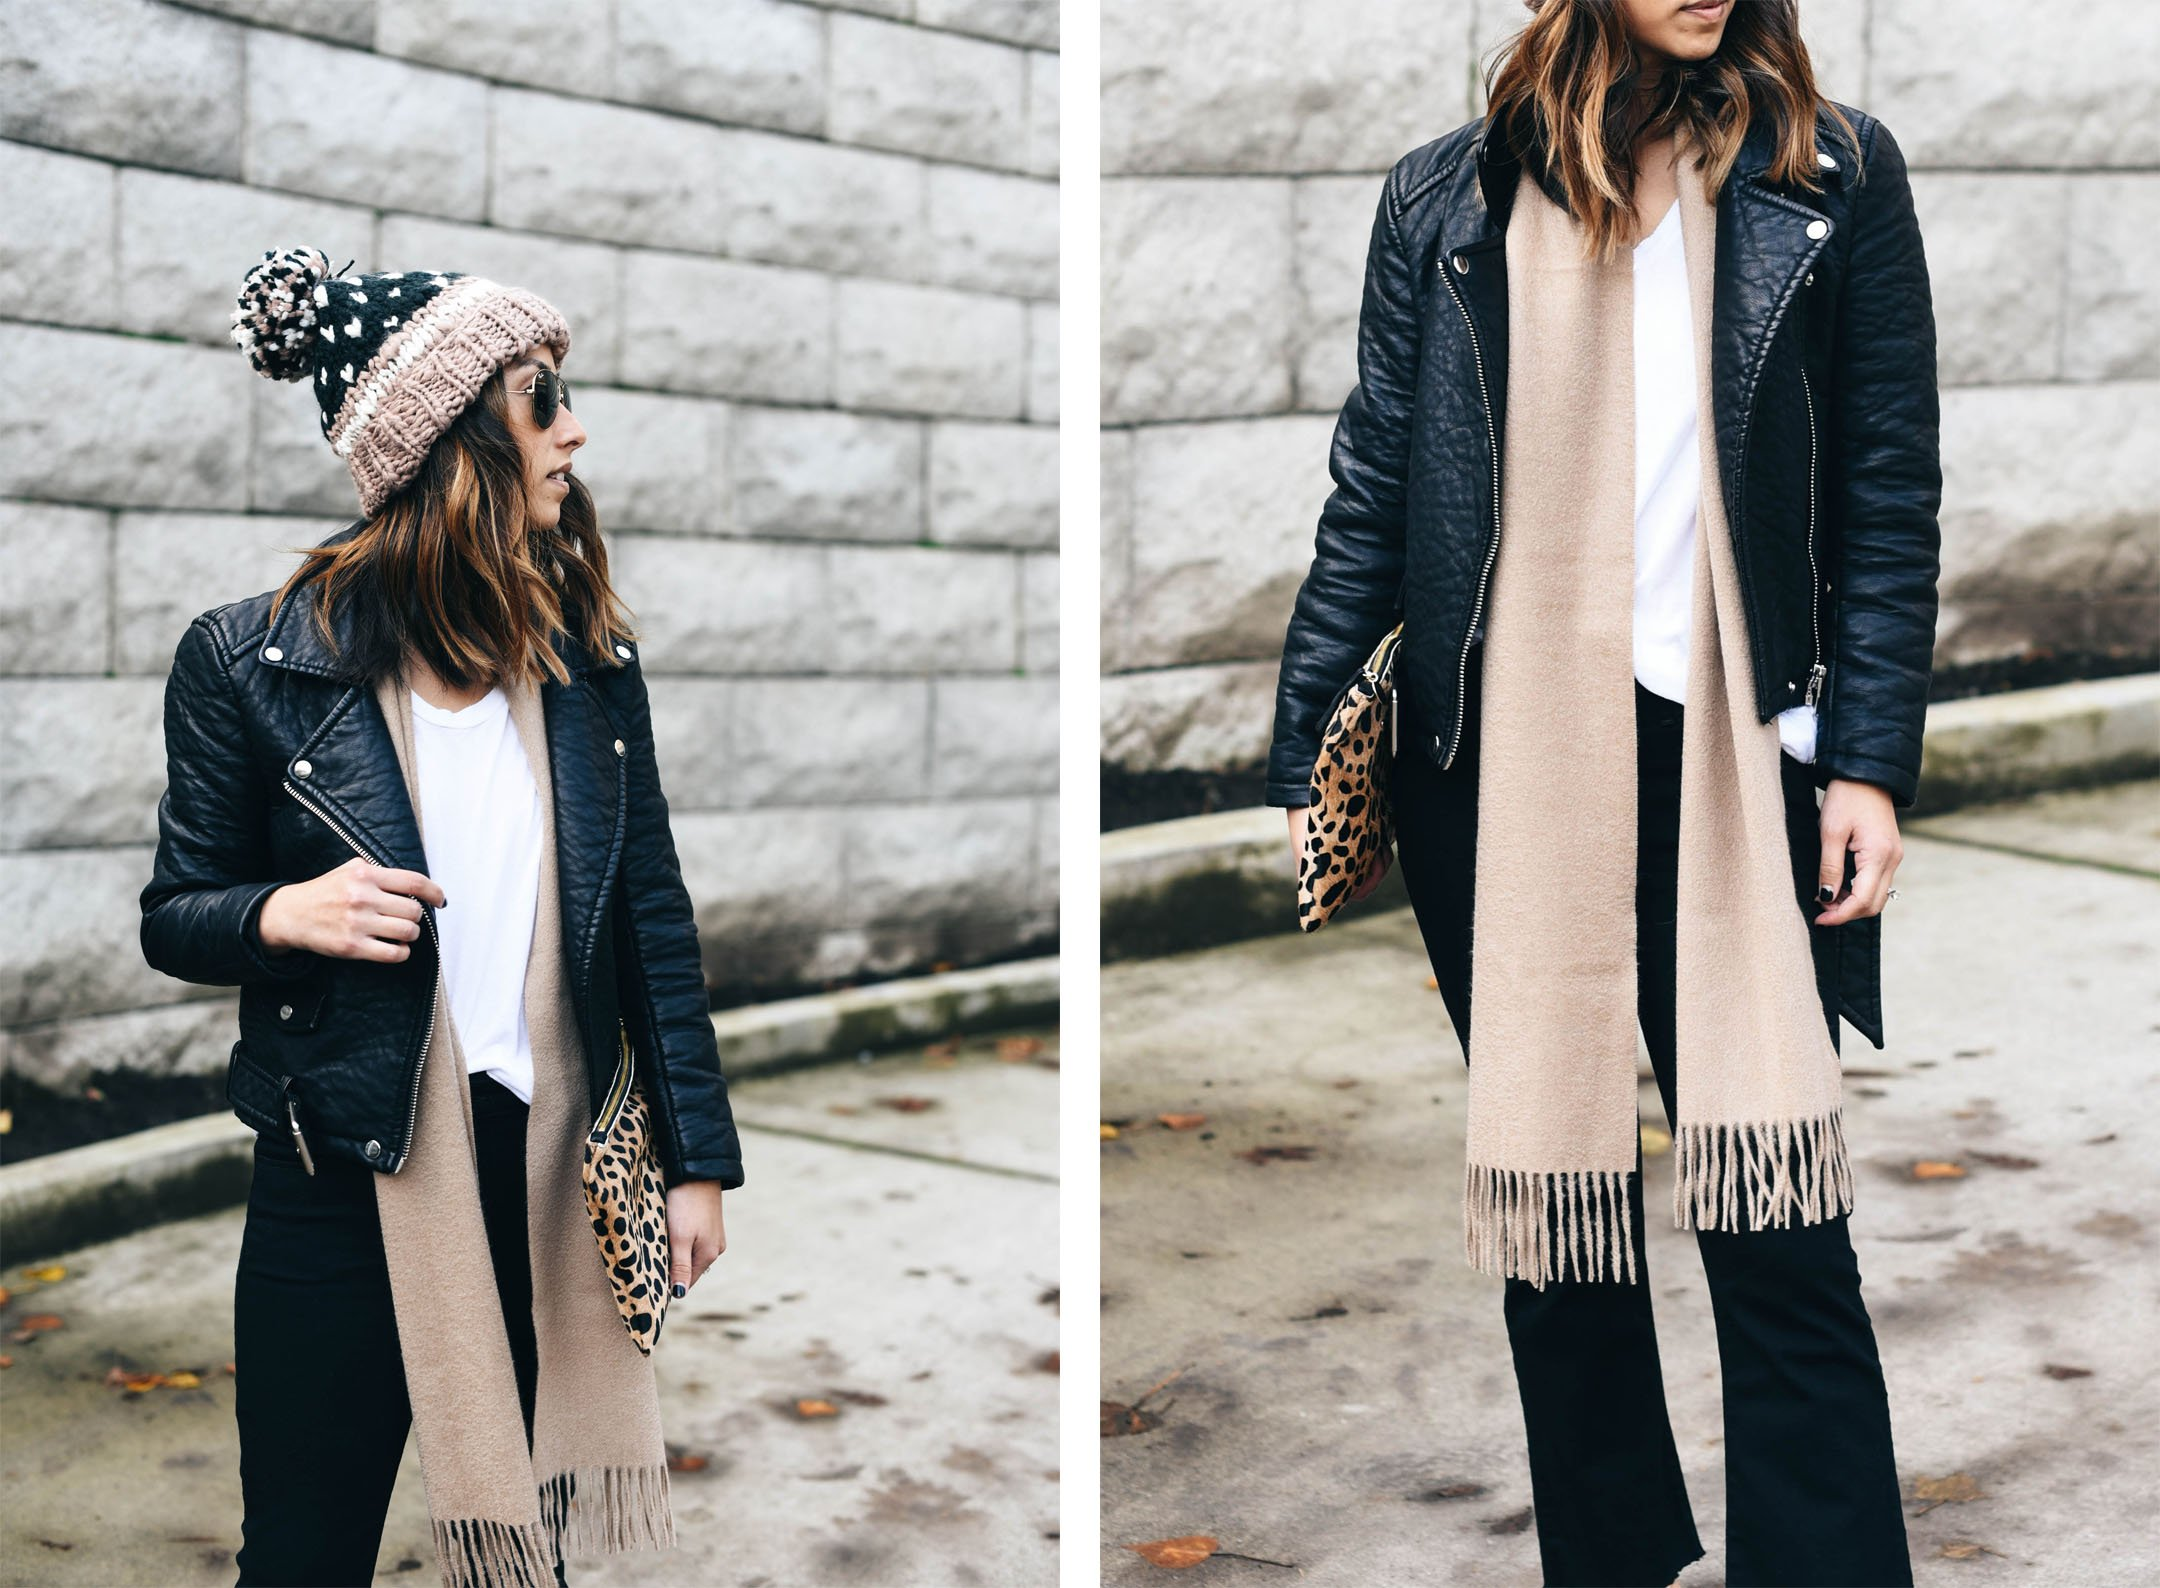 crystalin-marie-wearing-nordstrom-cashmere-scarf-in-camel